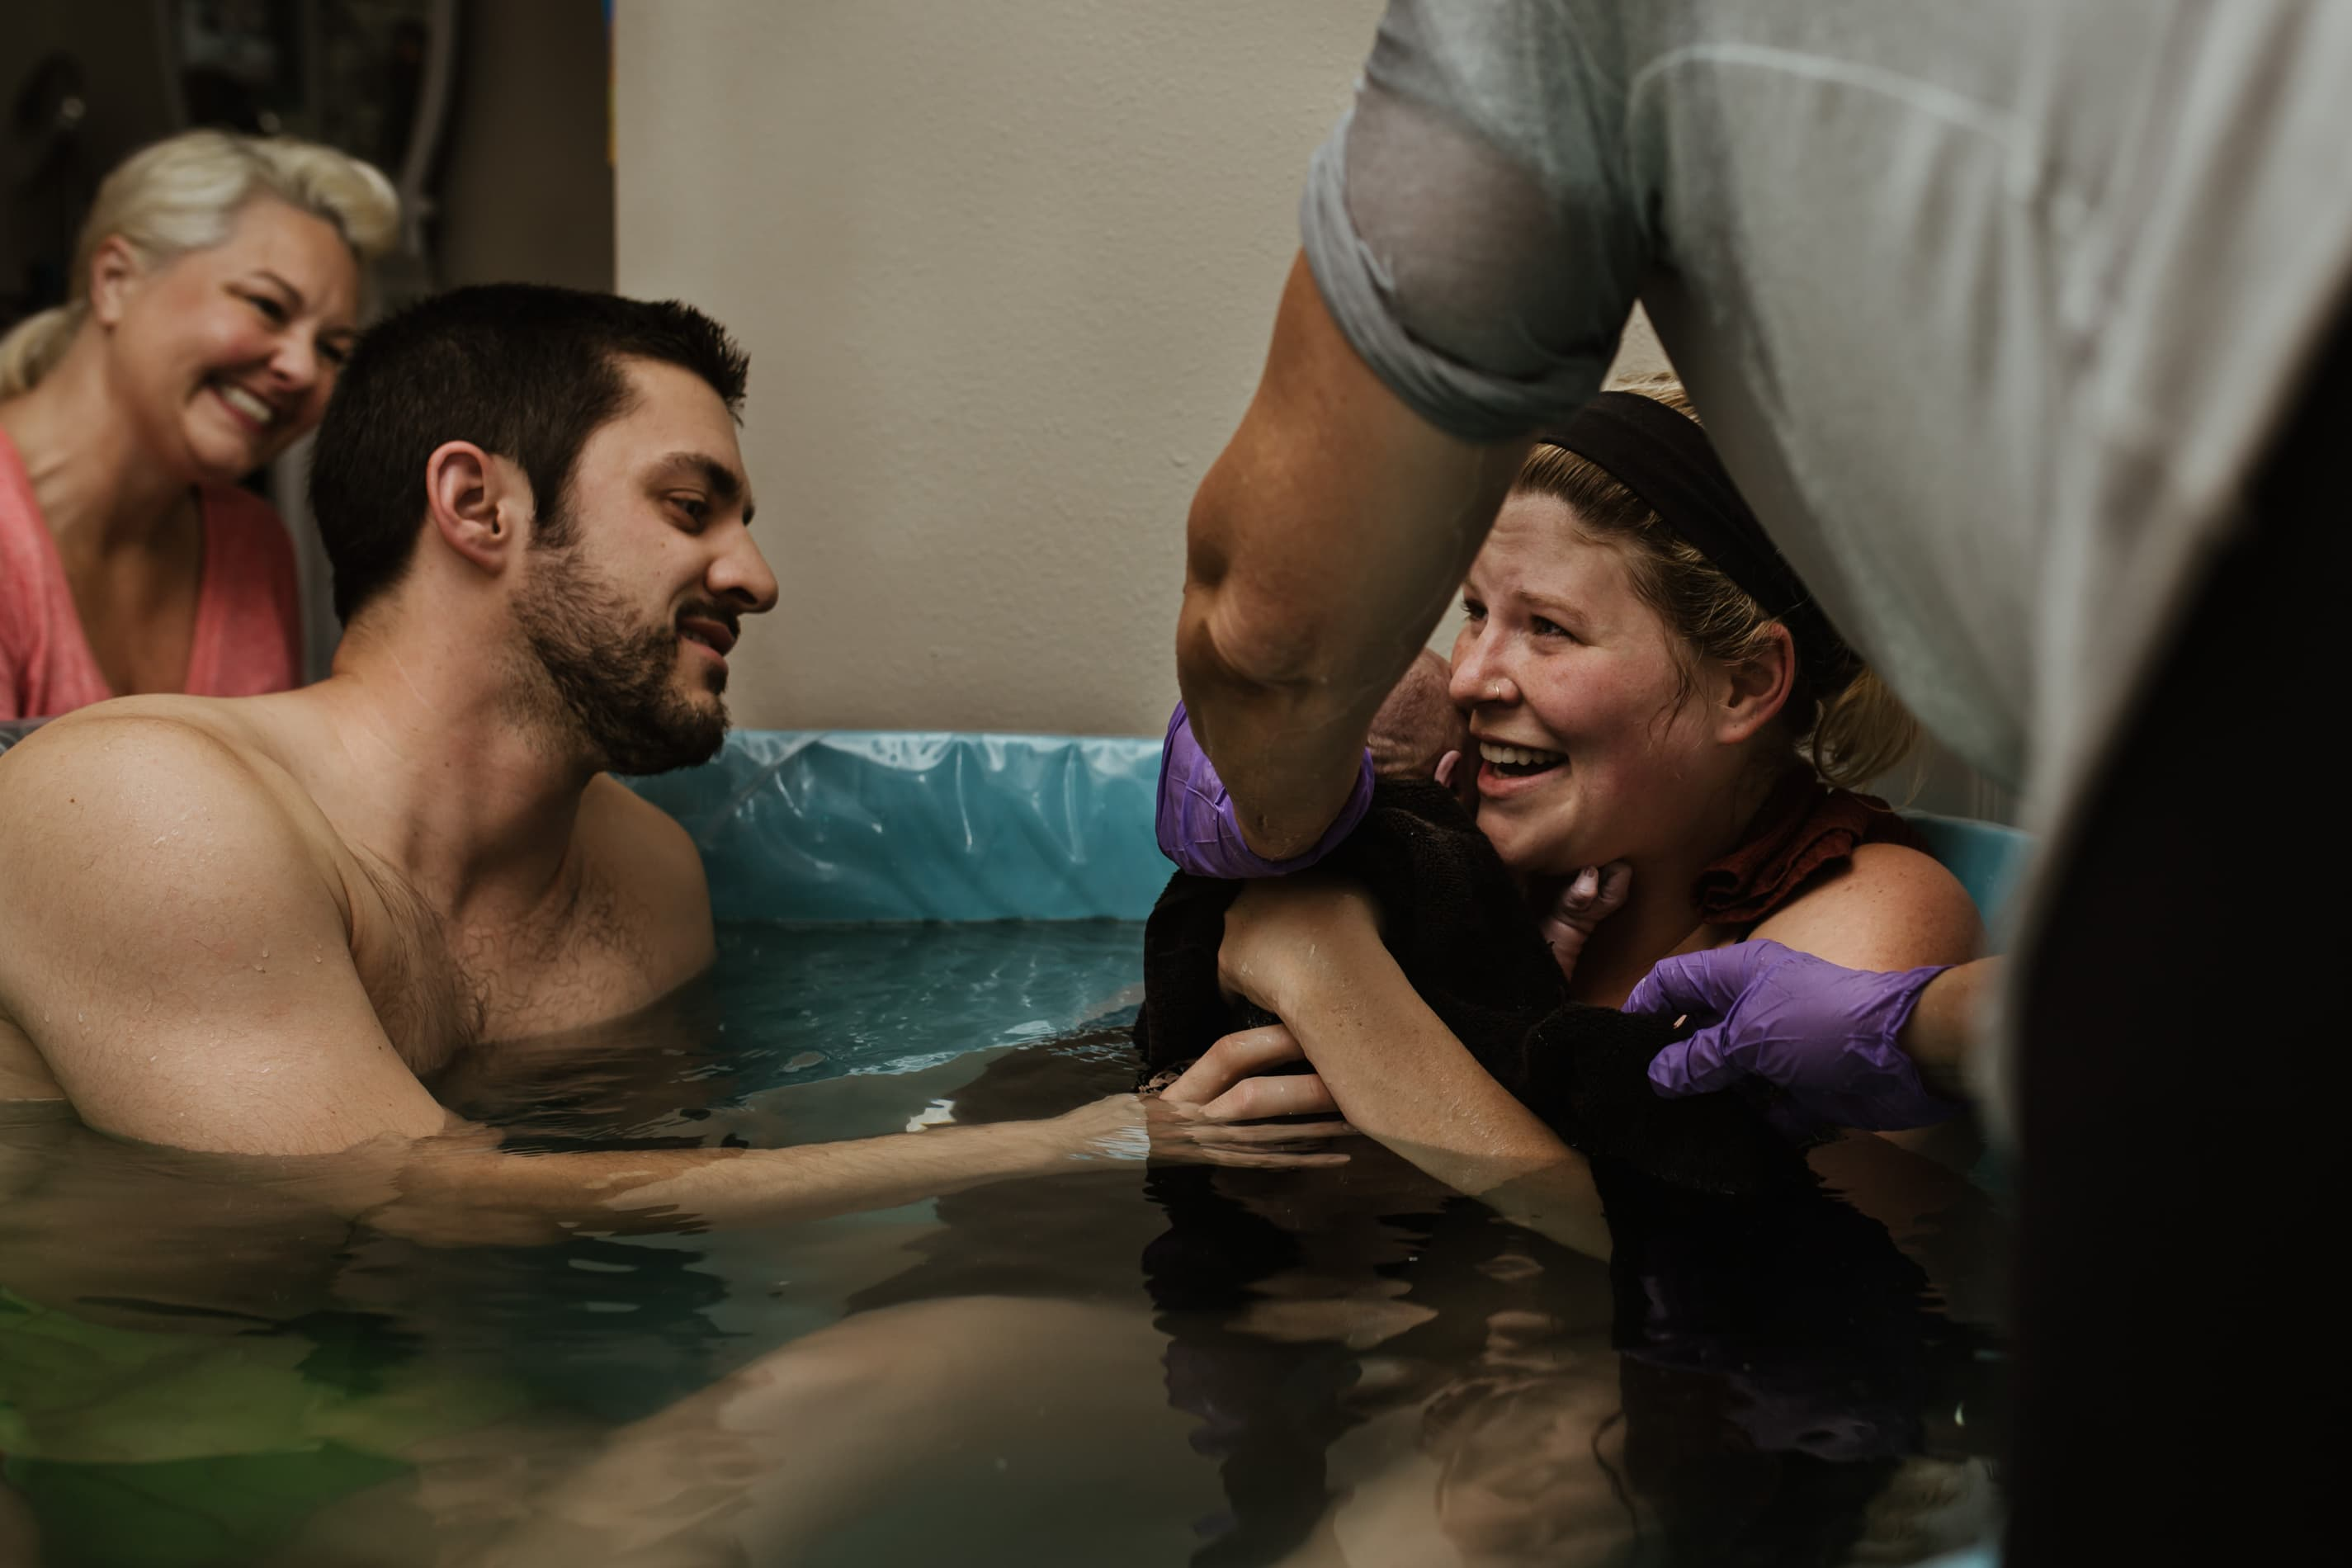 midwife assisted home birth mom receiving baby with excitement dad also in the tub reaching out to touch new baby